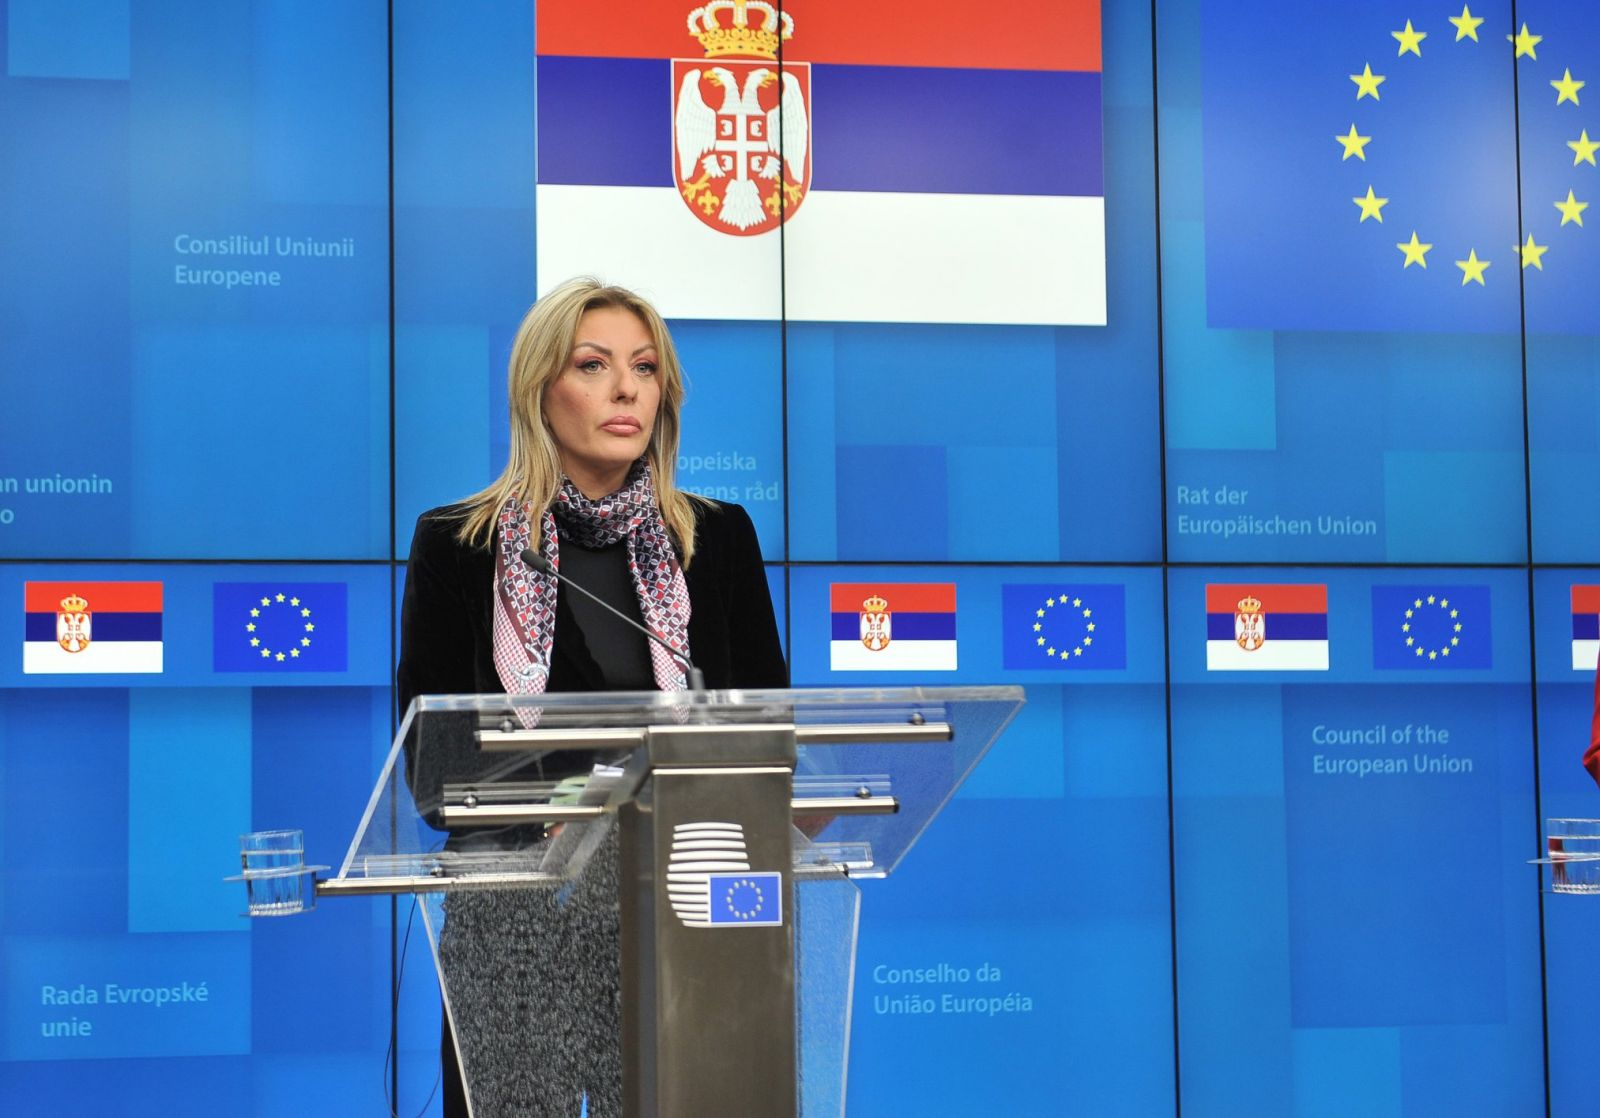 J. Joksimović: I expect additional EU support for Serbia